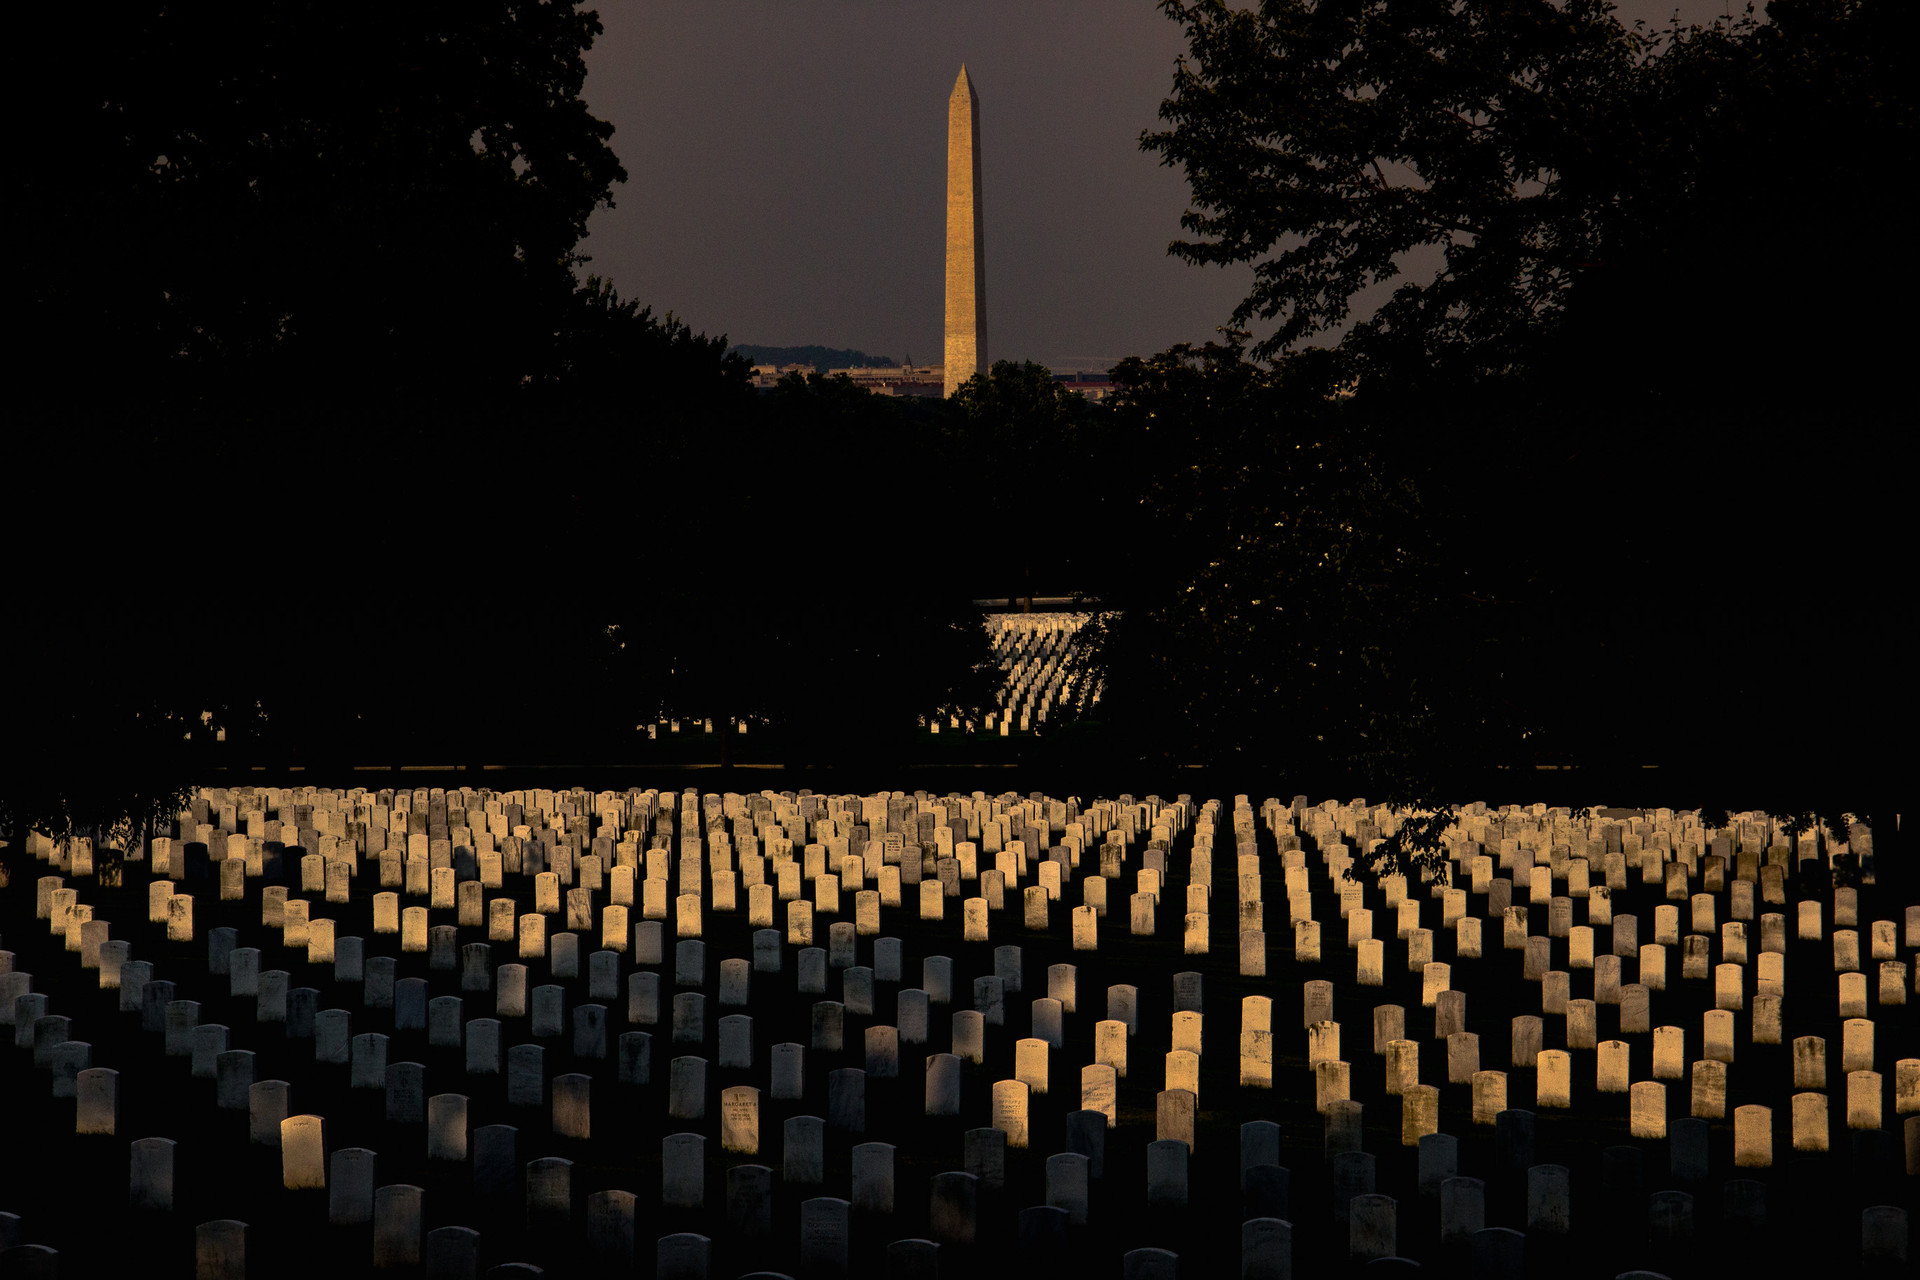 The light from the settign sun streams on the headstones of the unknown fallen soldiers and the Washington Monument at the Arlington National Cemetery on June 18, 2018.